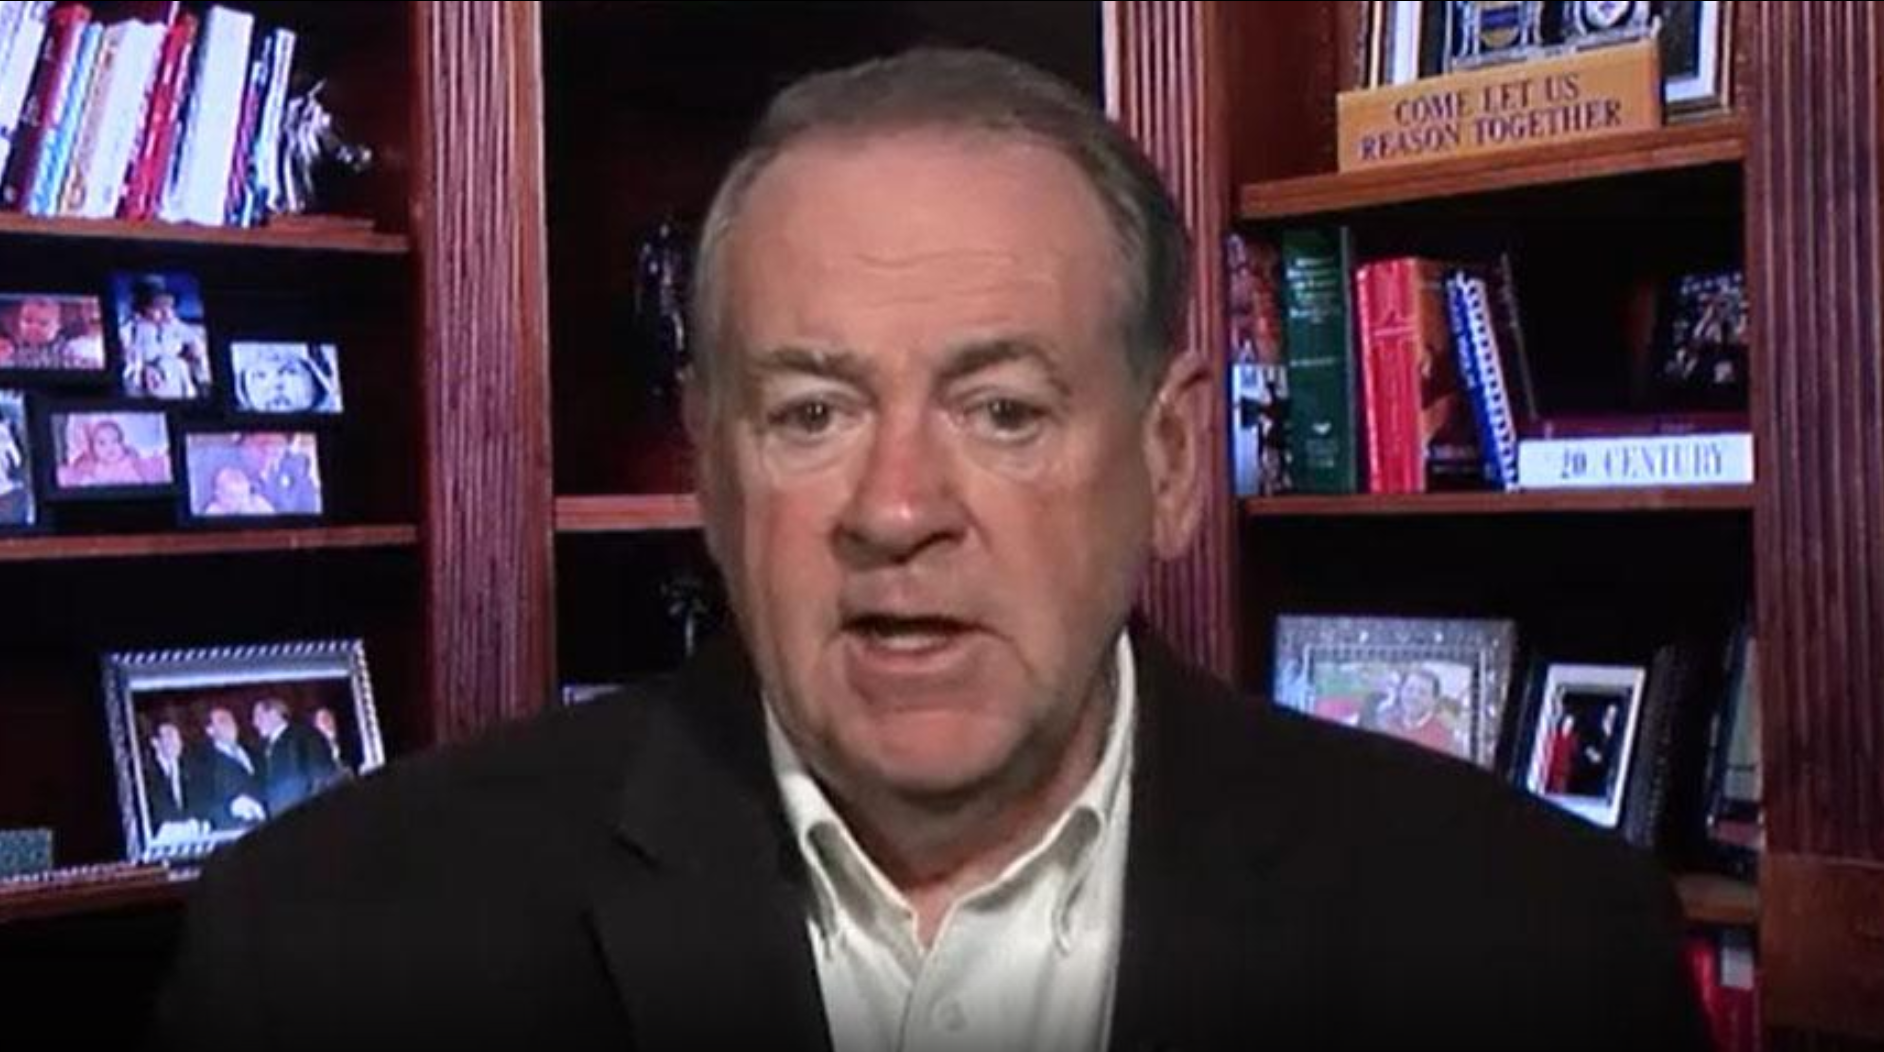 Westlake Legal Group Screen-Shot-2019-11-18-at-10.44.31-AM Huckabee: Dems 'chasing rainbows' with impeachment, Trump headed for 'landslide' win Joshua Nelson fox-news/shows/fox-friends fox-news/politics/trump-impeachment-inquiry fox-news/media/fox-news-flash fox news fnc/media fnc article 78586fdf-f556-5639-b9e0-8033eb09c32e